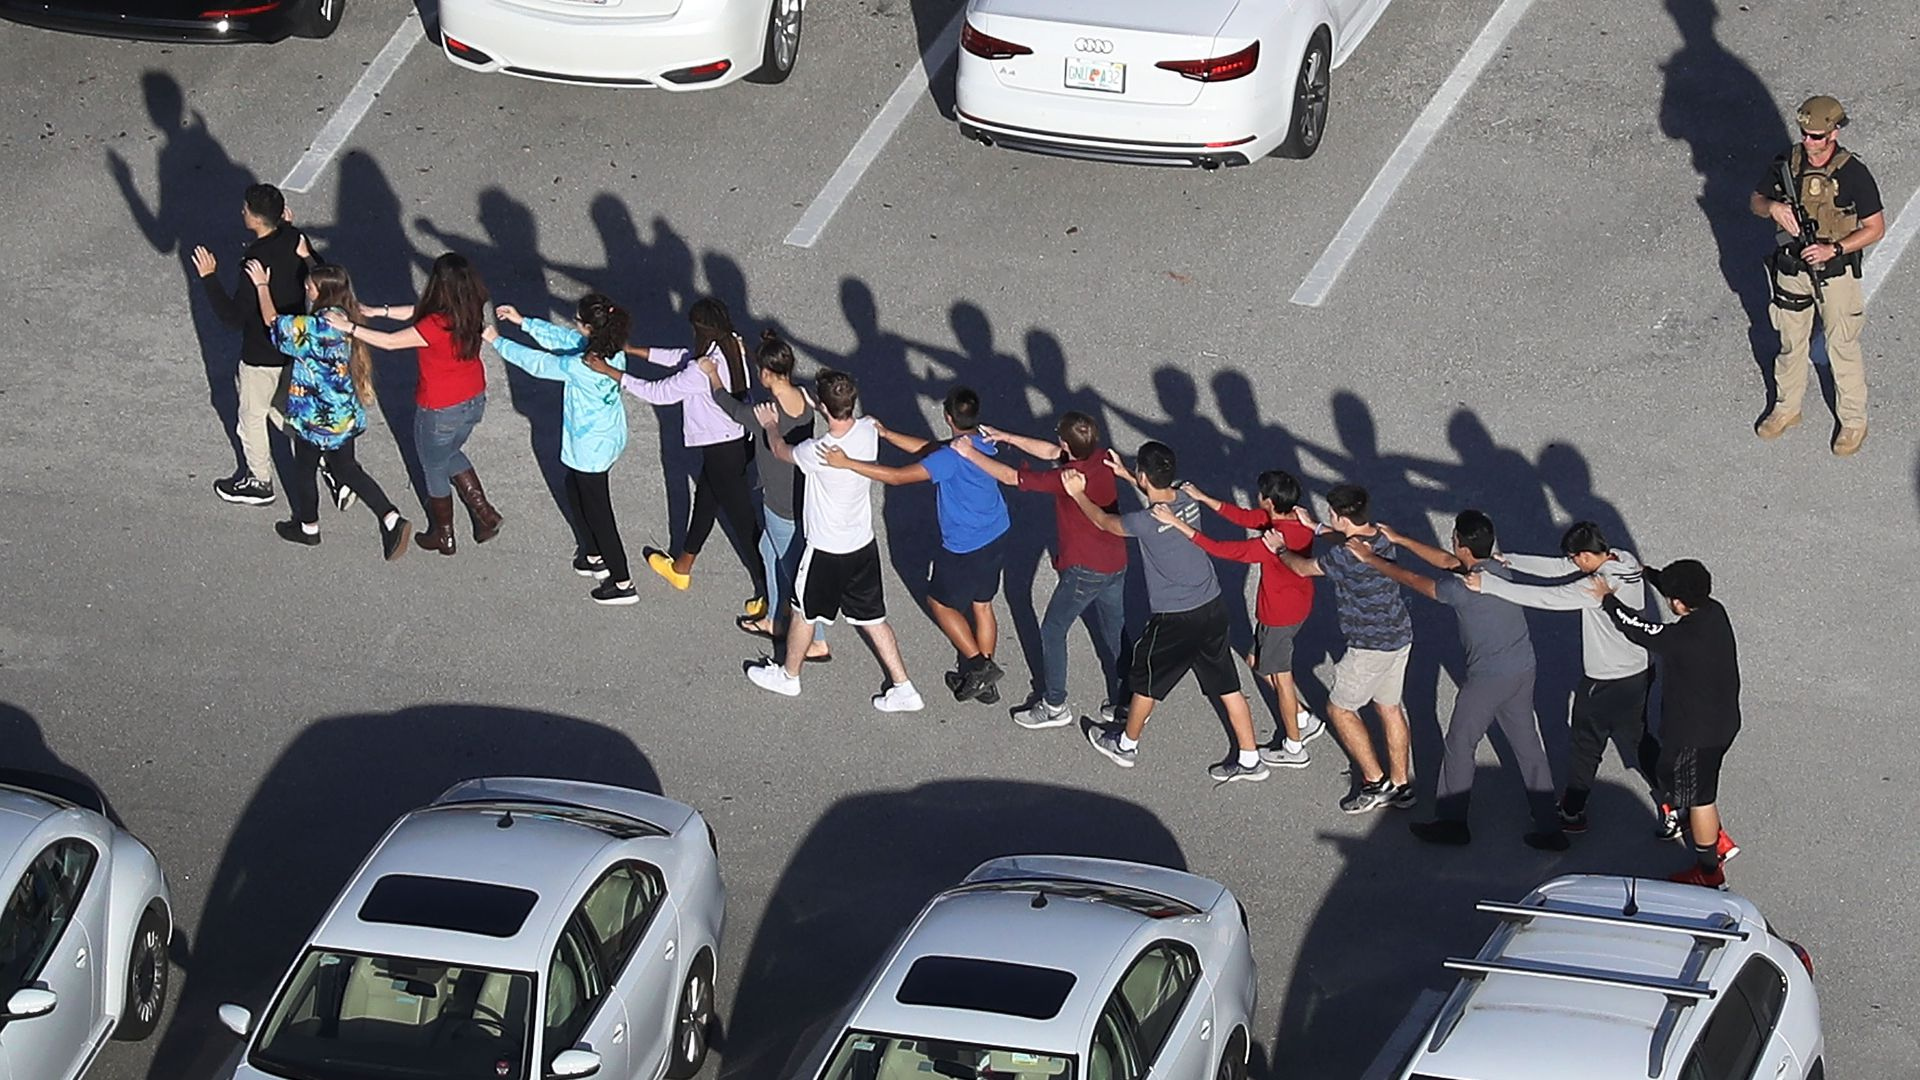 People being brought out of the Marjory Stoneman Douglas High School after a shooting at the school on February 14, 2018 in Parkland, Florida.